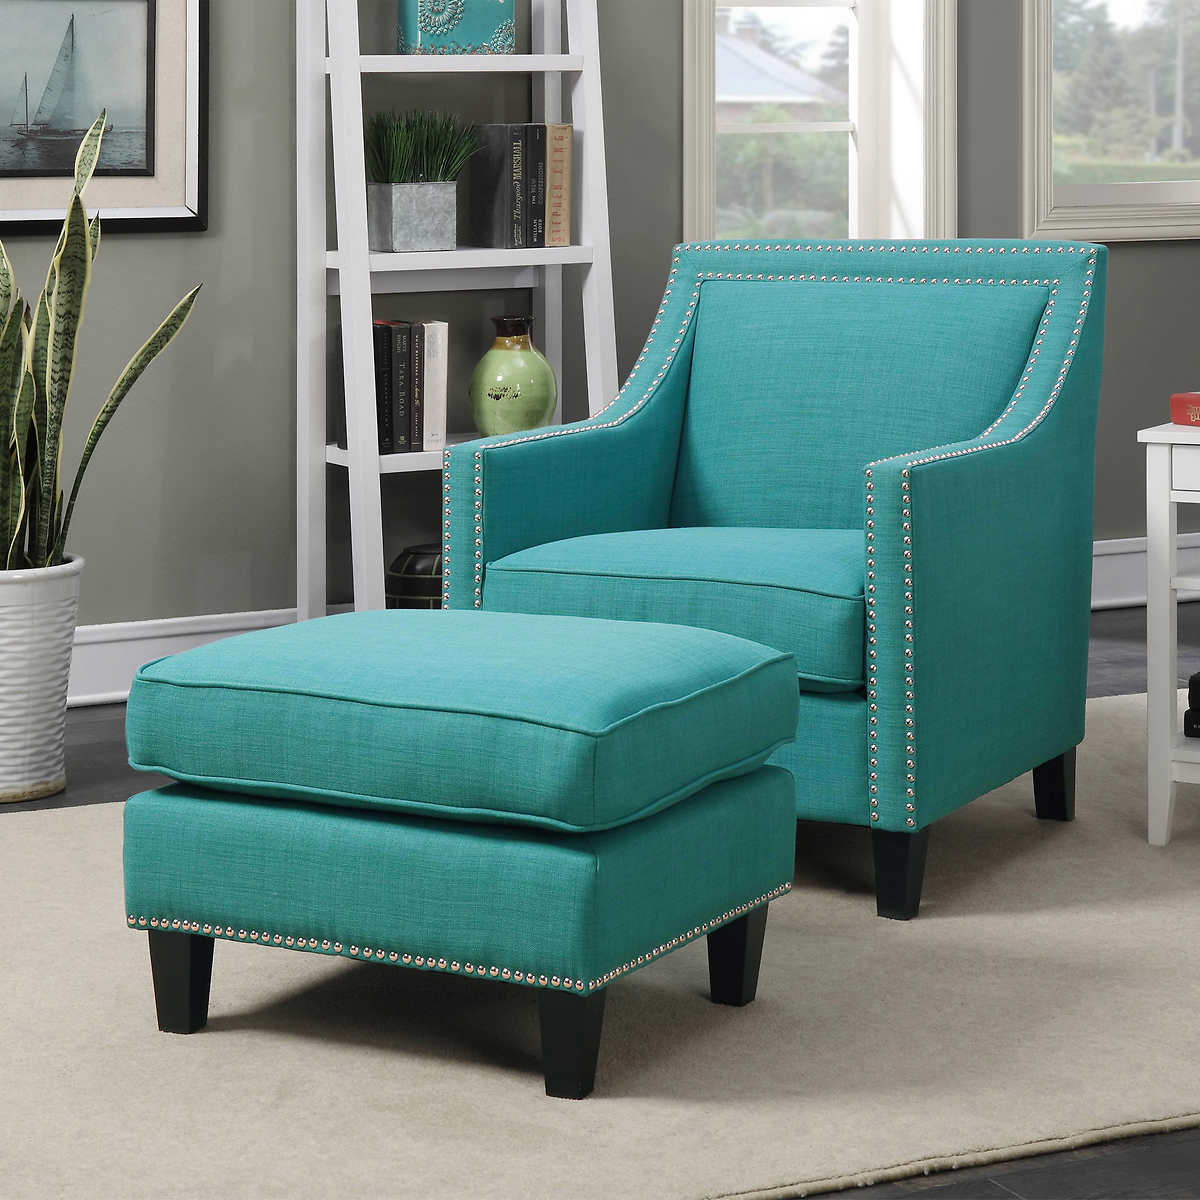 Teal accent chair with arms - Teal Accent Chair With Arms 20